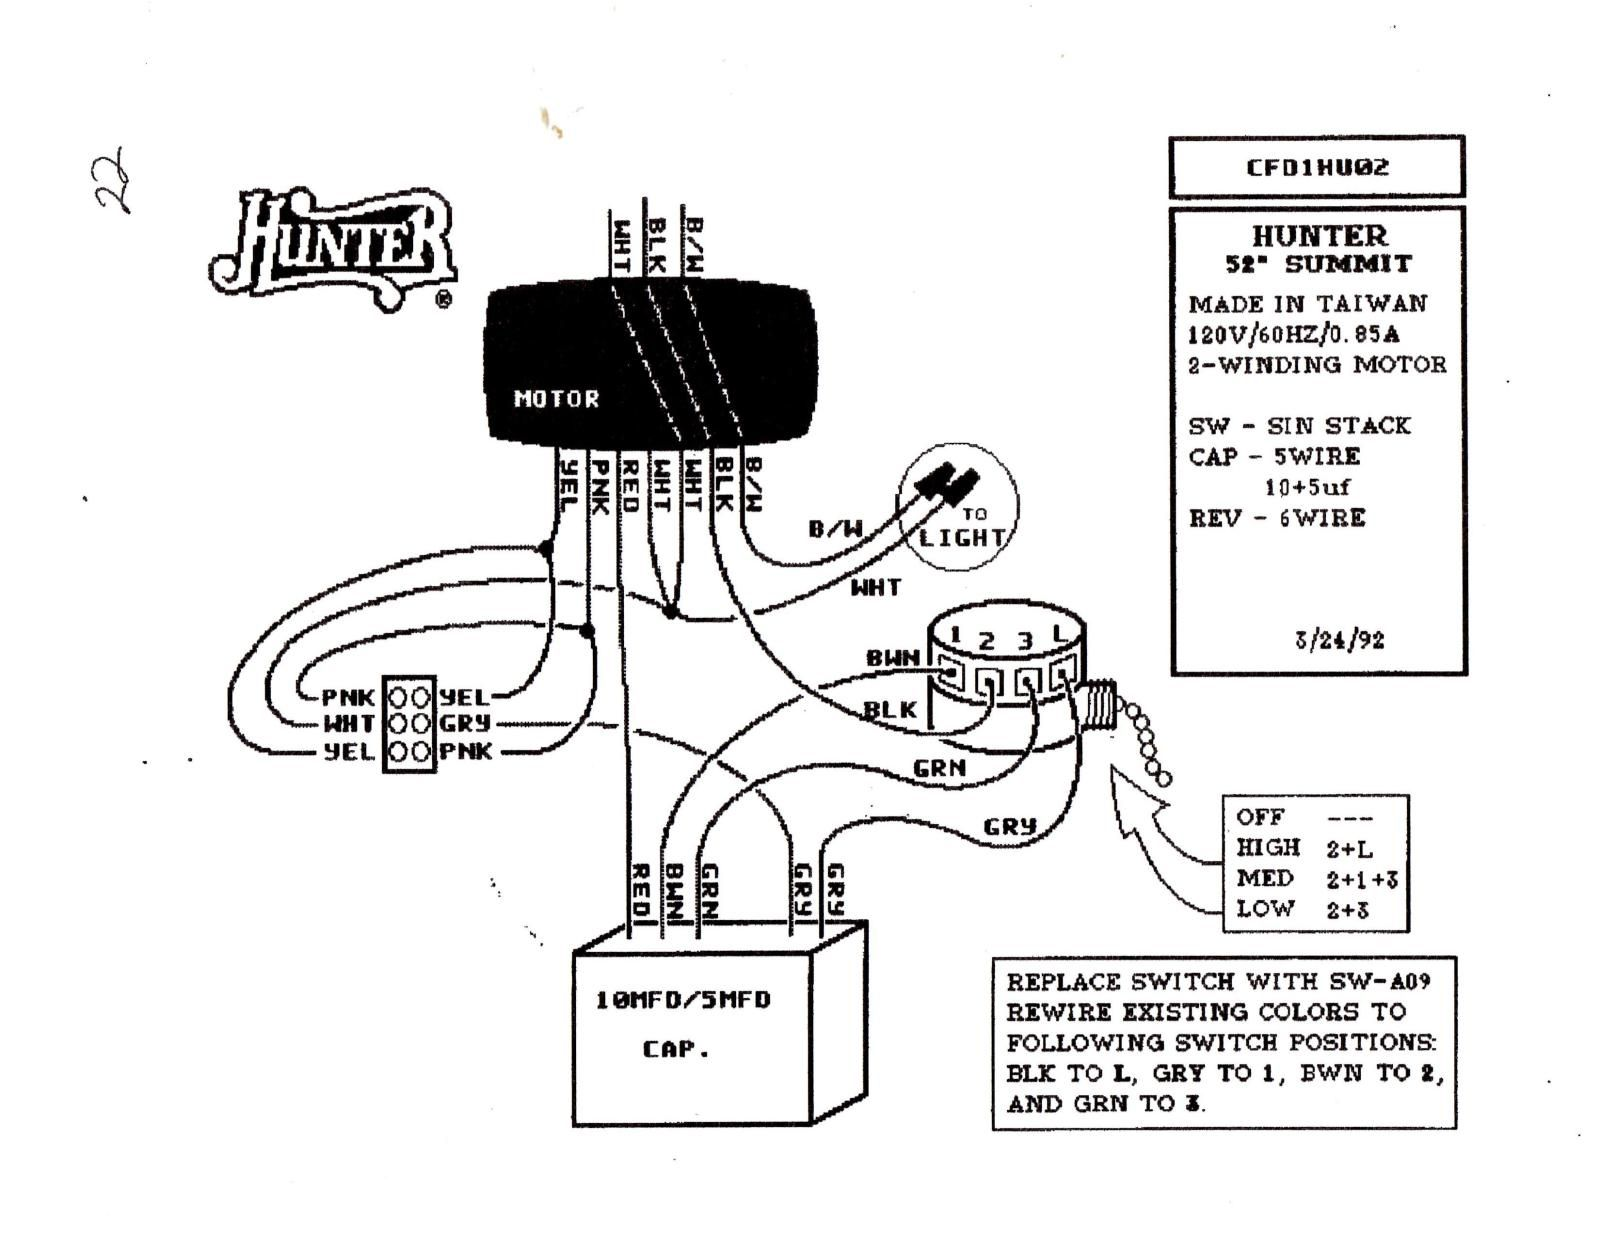 Ceiling Fan Sd Control Wiring Diagram. how to install ceiling fan diagram  ceiling fans ideas. hunter ceiling fan switch wire colors ceiling fans  ideas. sd ceiling fan wiring diagram for capacitor get2002-acura-tl-radio.info